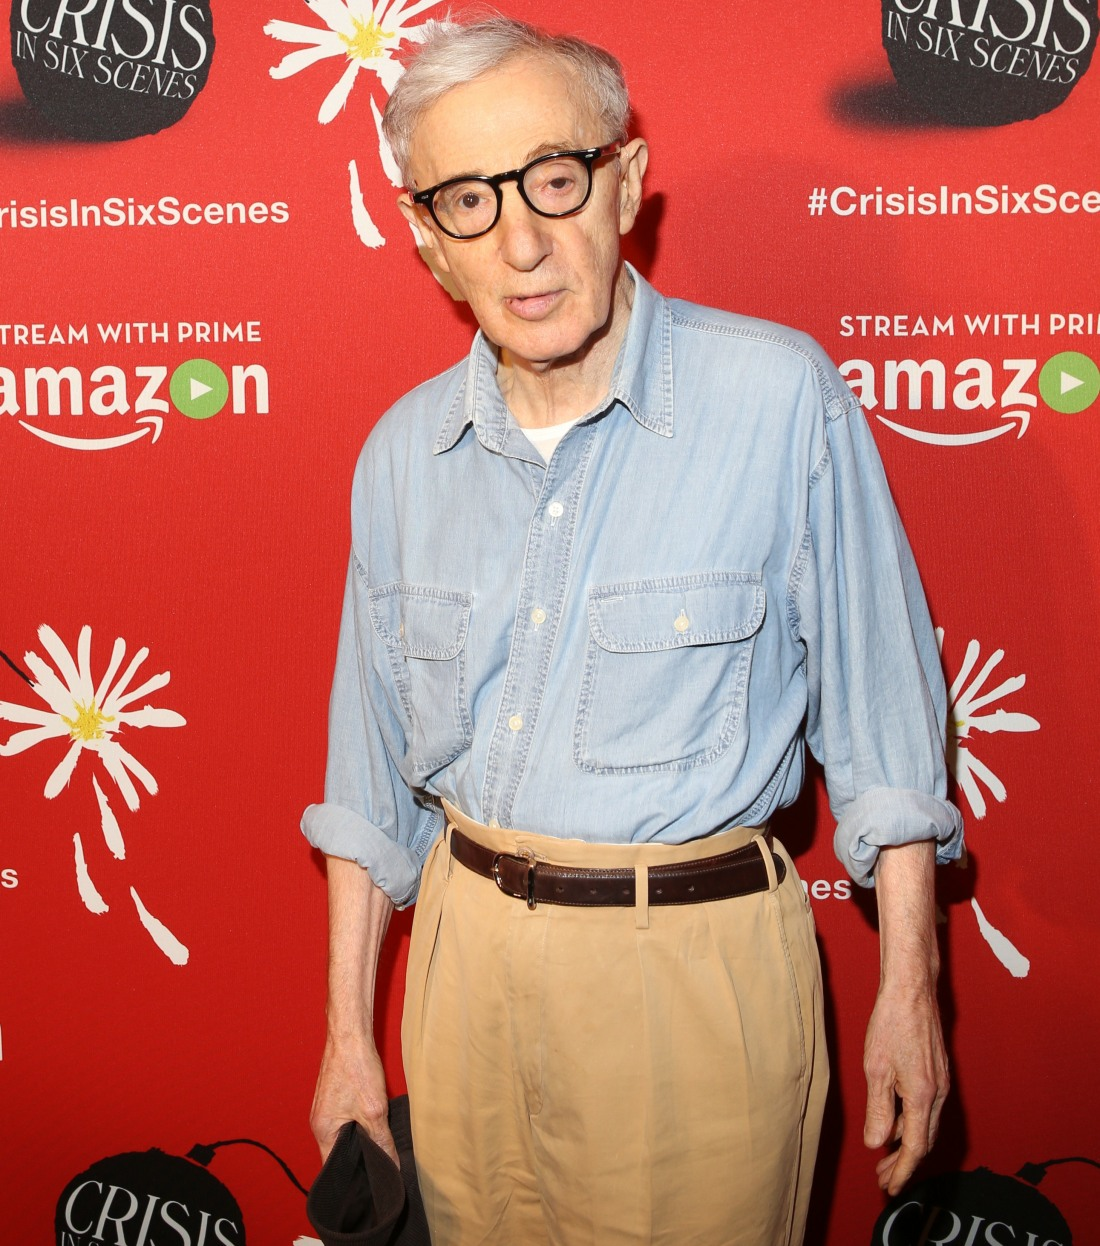 Dylan Farrow calls out Woody Allen & his collaborators in a LA Times op-ed